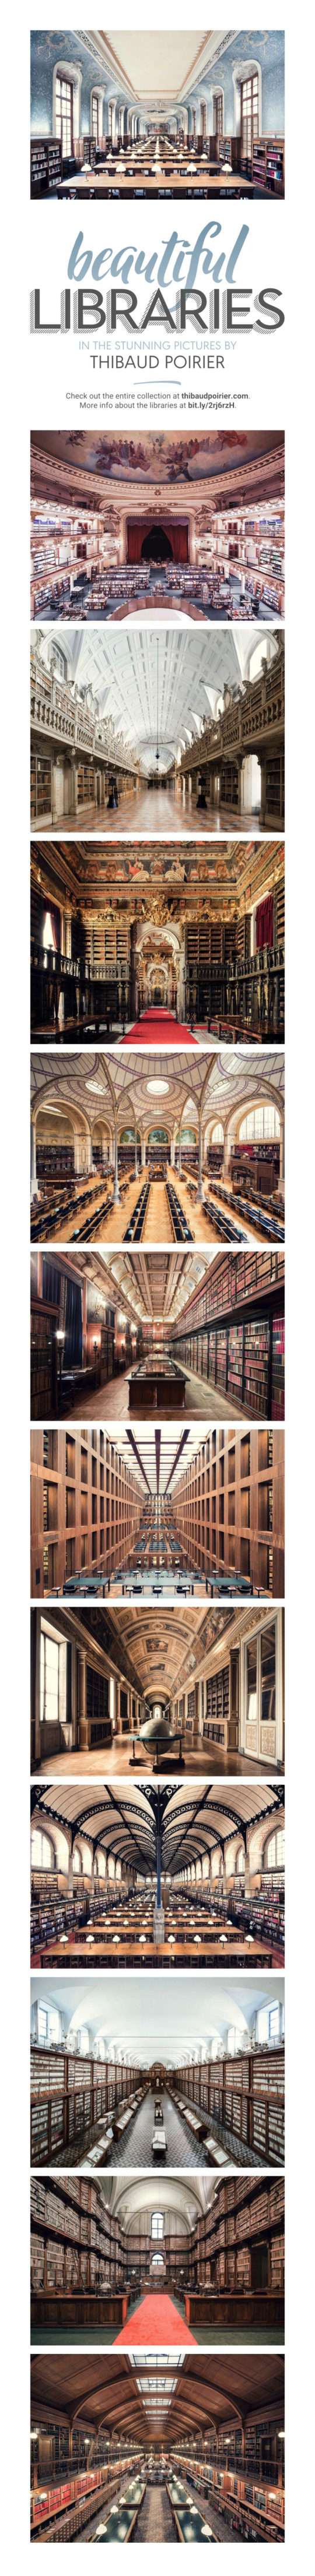 Reading rooms in the stunning photographs by Thibaud Poirier